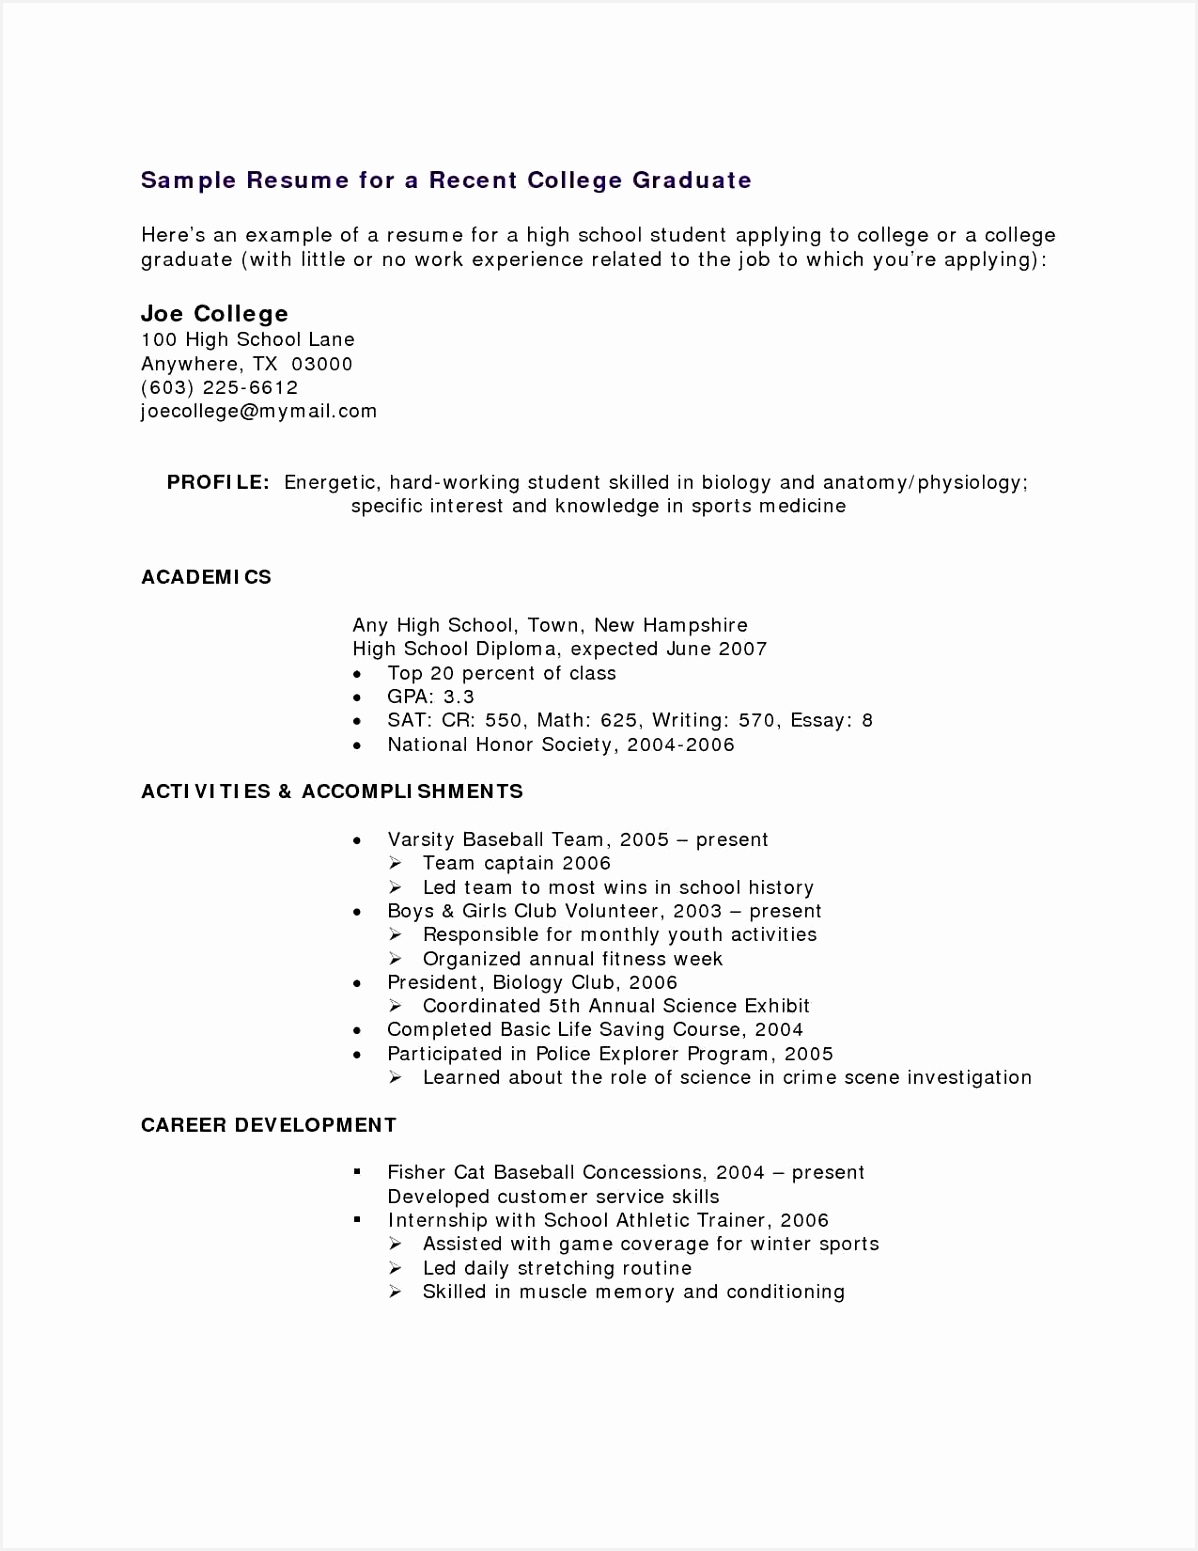 Resume Samples for Graduate School Gchle Inspirational Student Affairs Resume Samples Best Resume Examples for Jobs with Of Resume Samples for Graduate School Fkzfo Elegant √ Resume Summary Examples Free Template Fresh Grapher Resume Sample